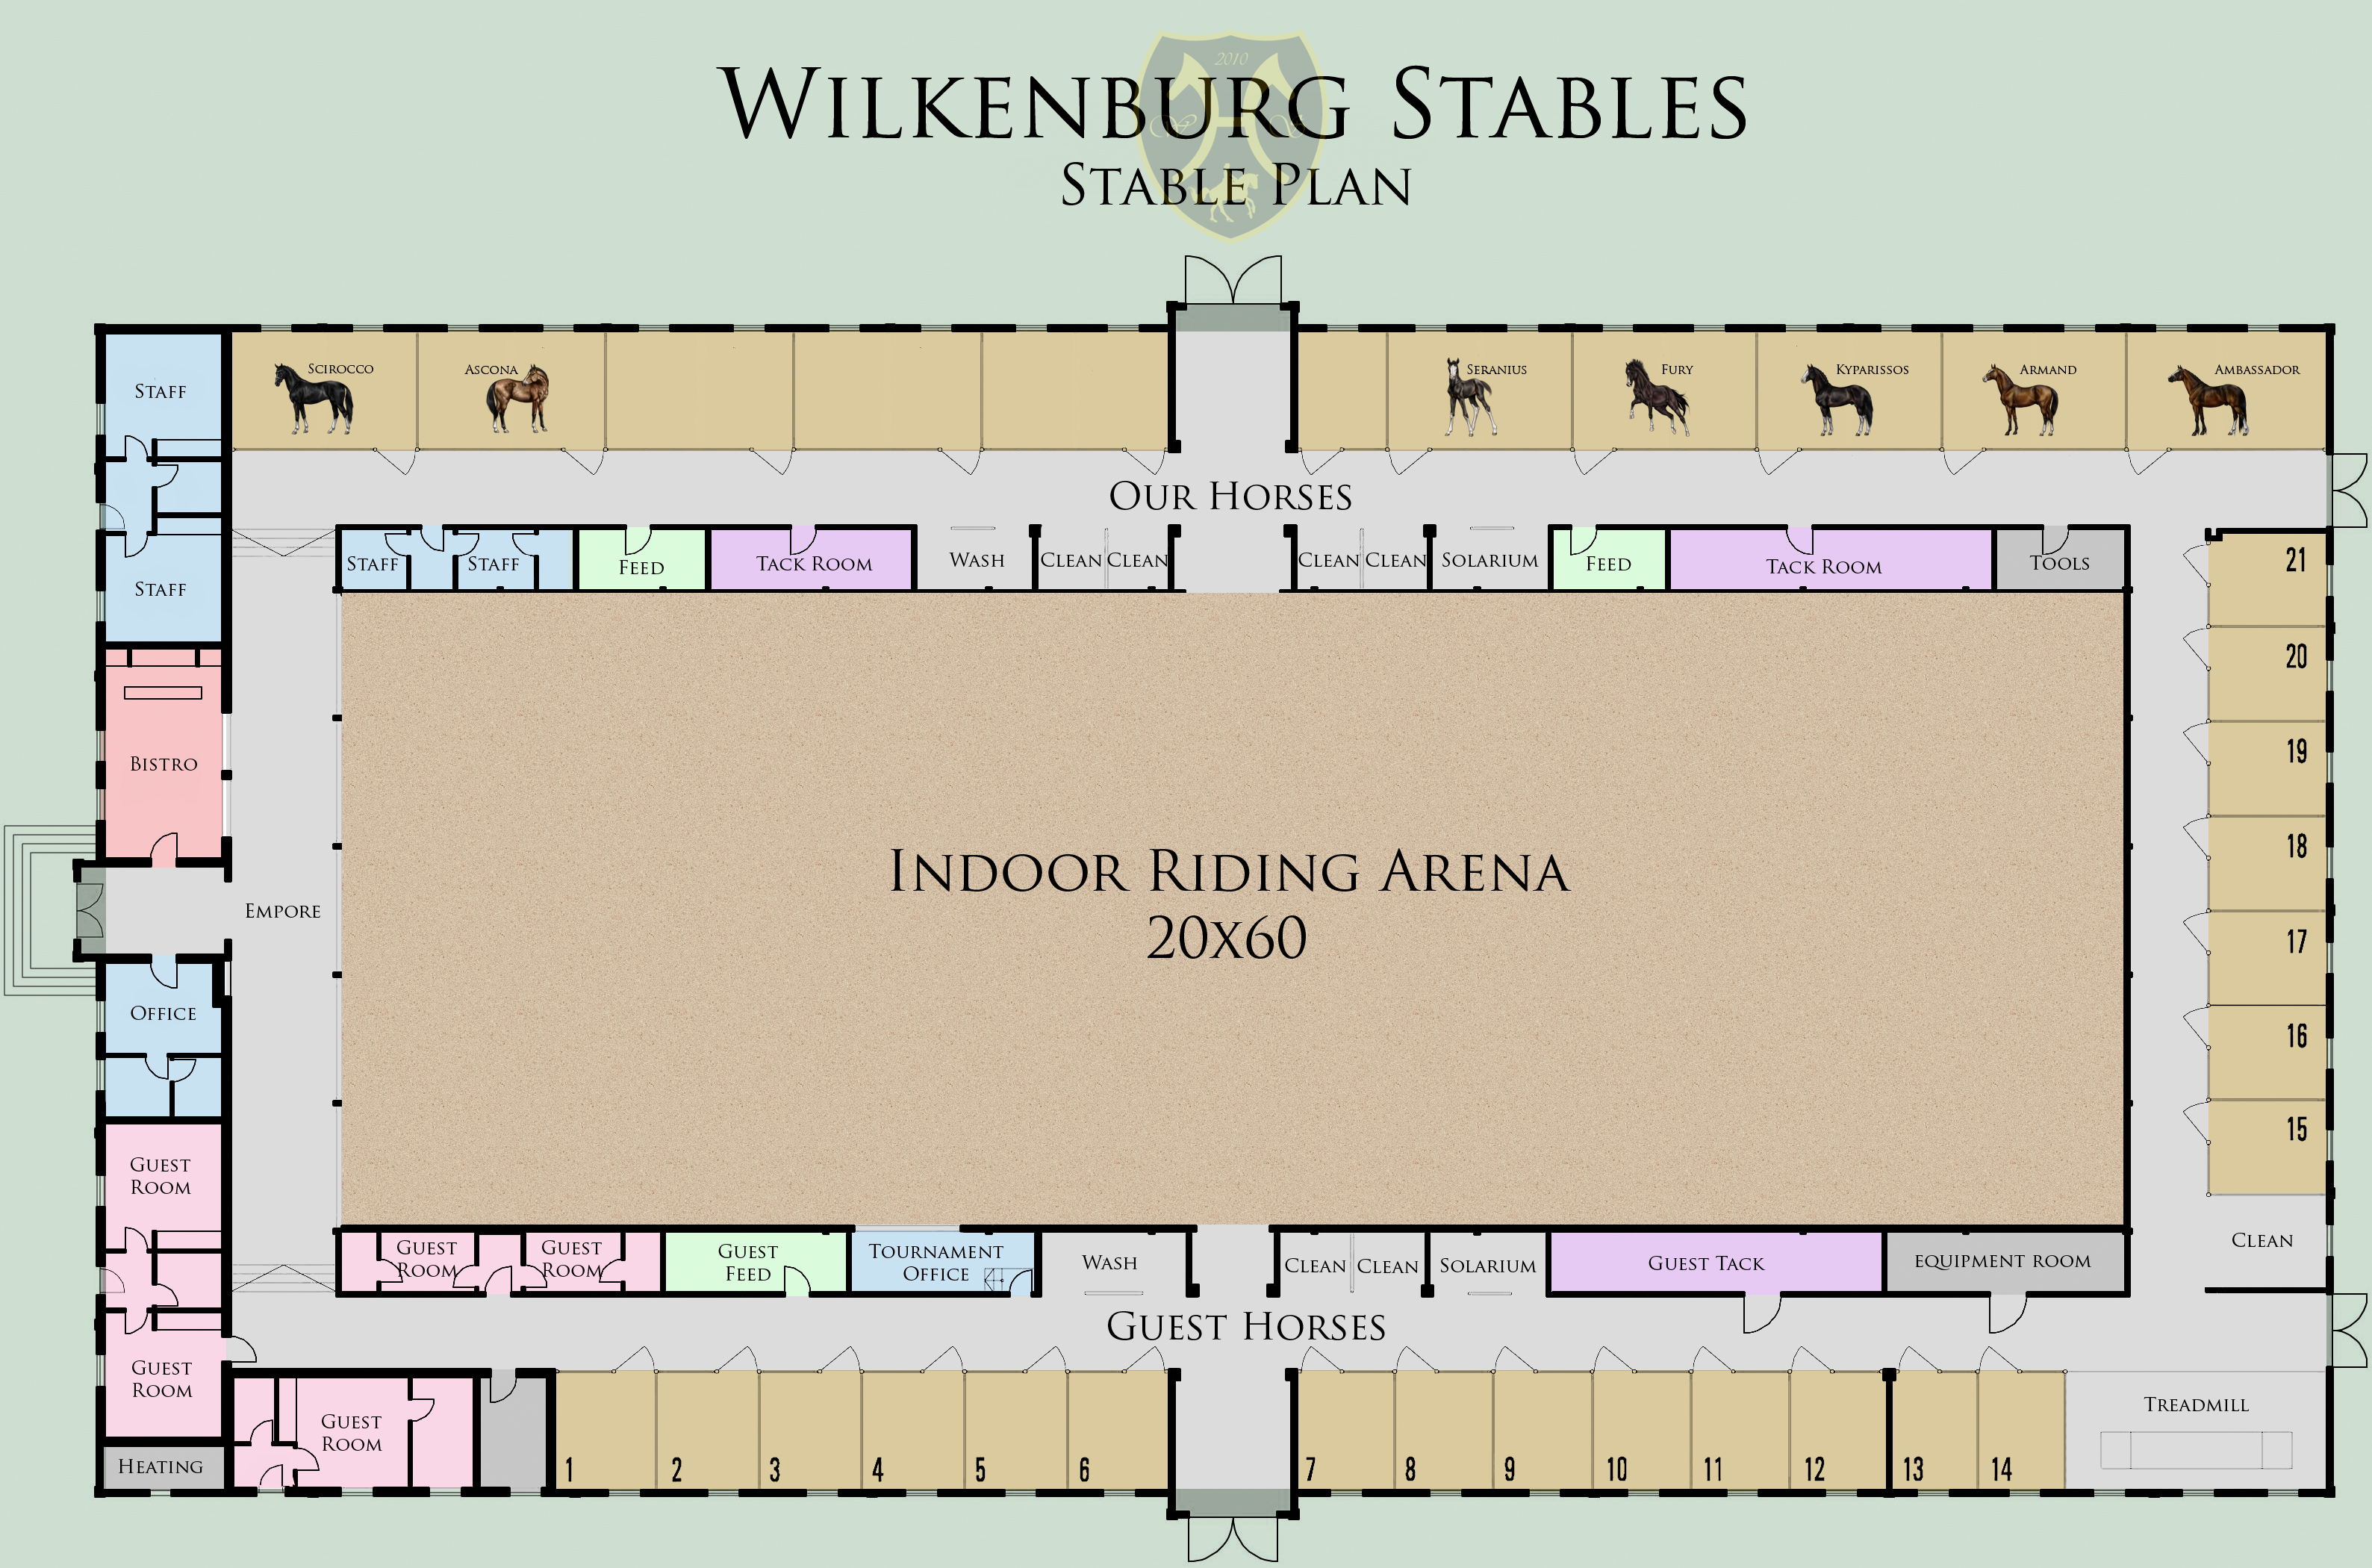 Wilkenburg stables stable plan by tigra1988 on deviantart for Horse stable blueprints